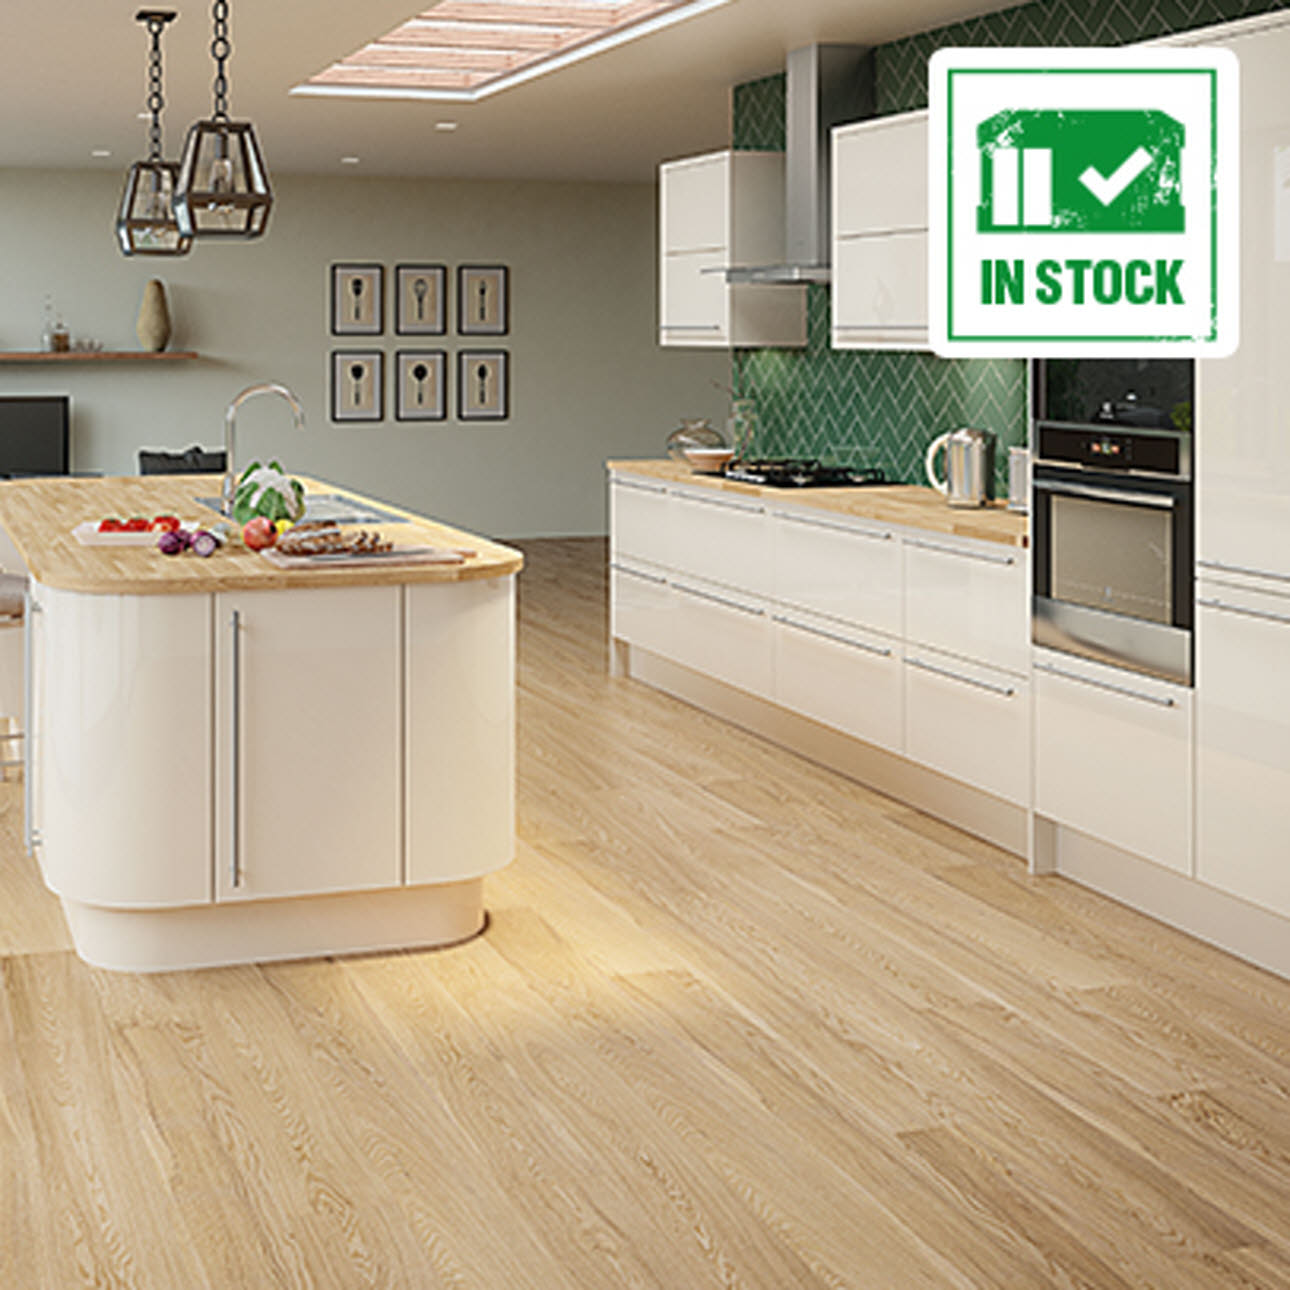 Kitchen Cabinet Suppliers Uk: Our Range Of In Stock Kitchens